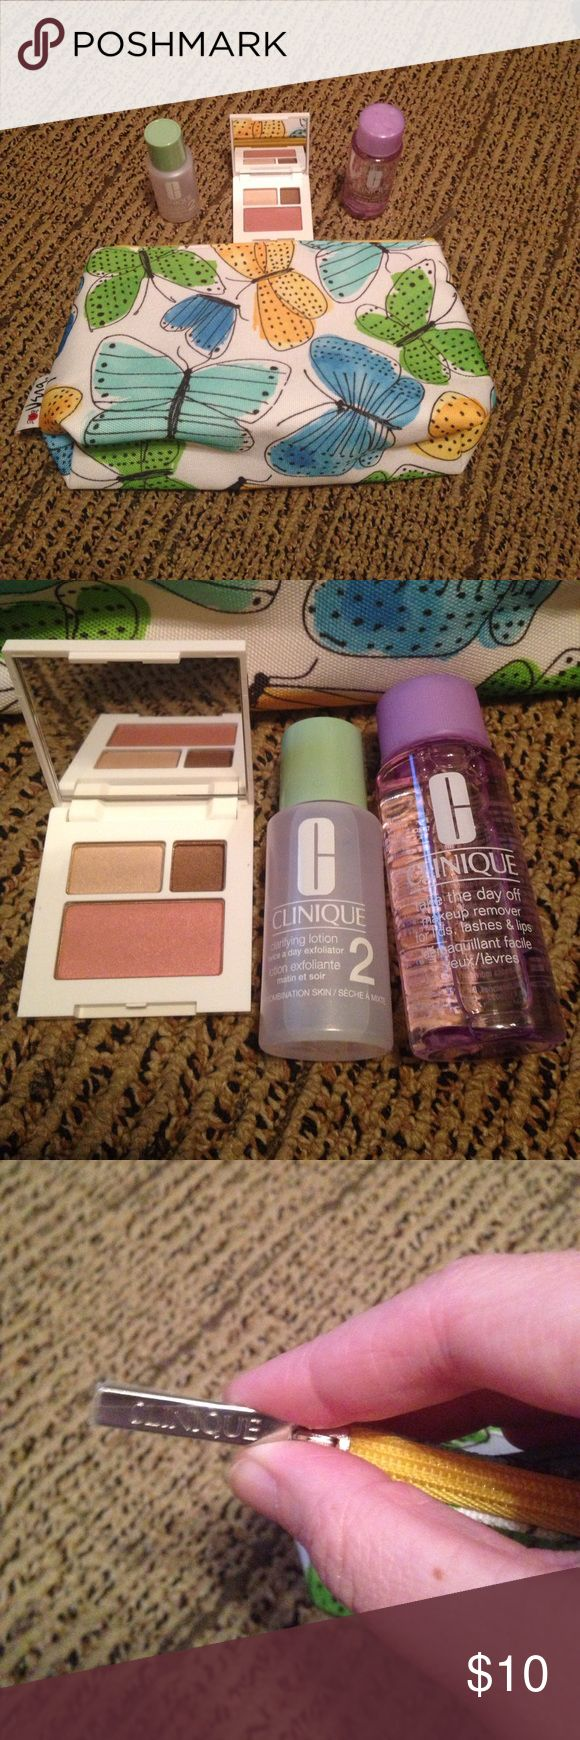 Clinique Beauty Bundle. New! Never Used. Clinique make up bag with butterflies and lady bag print inside. Small travel size Clarifying Lotion 2. Small Take the Day Off Makeup remover for eyes and lips. Small shadow duo/blush. Bundle and Save. Smoke and pet free home. Clinique Makeup